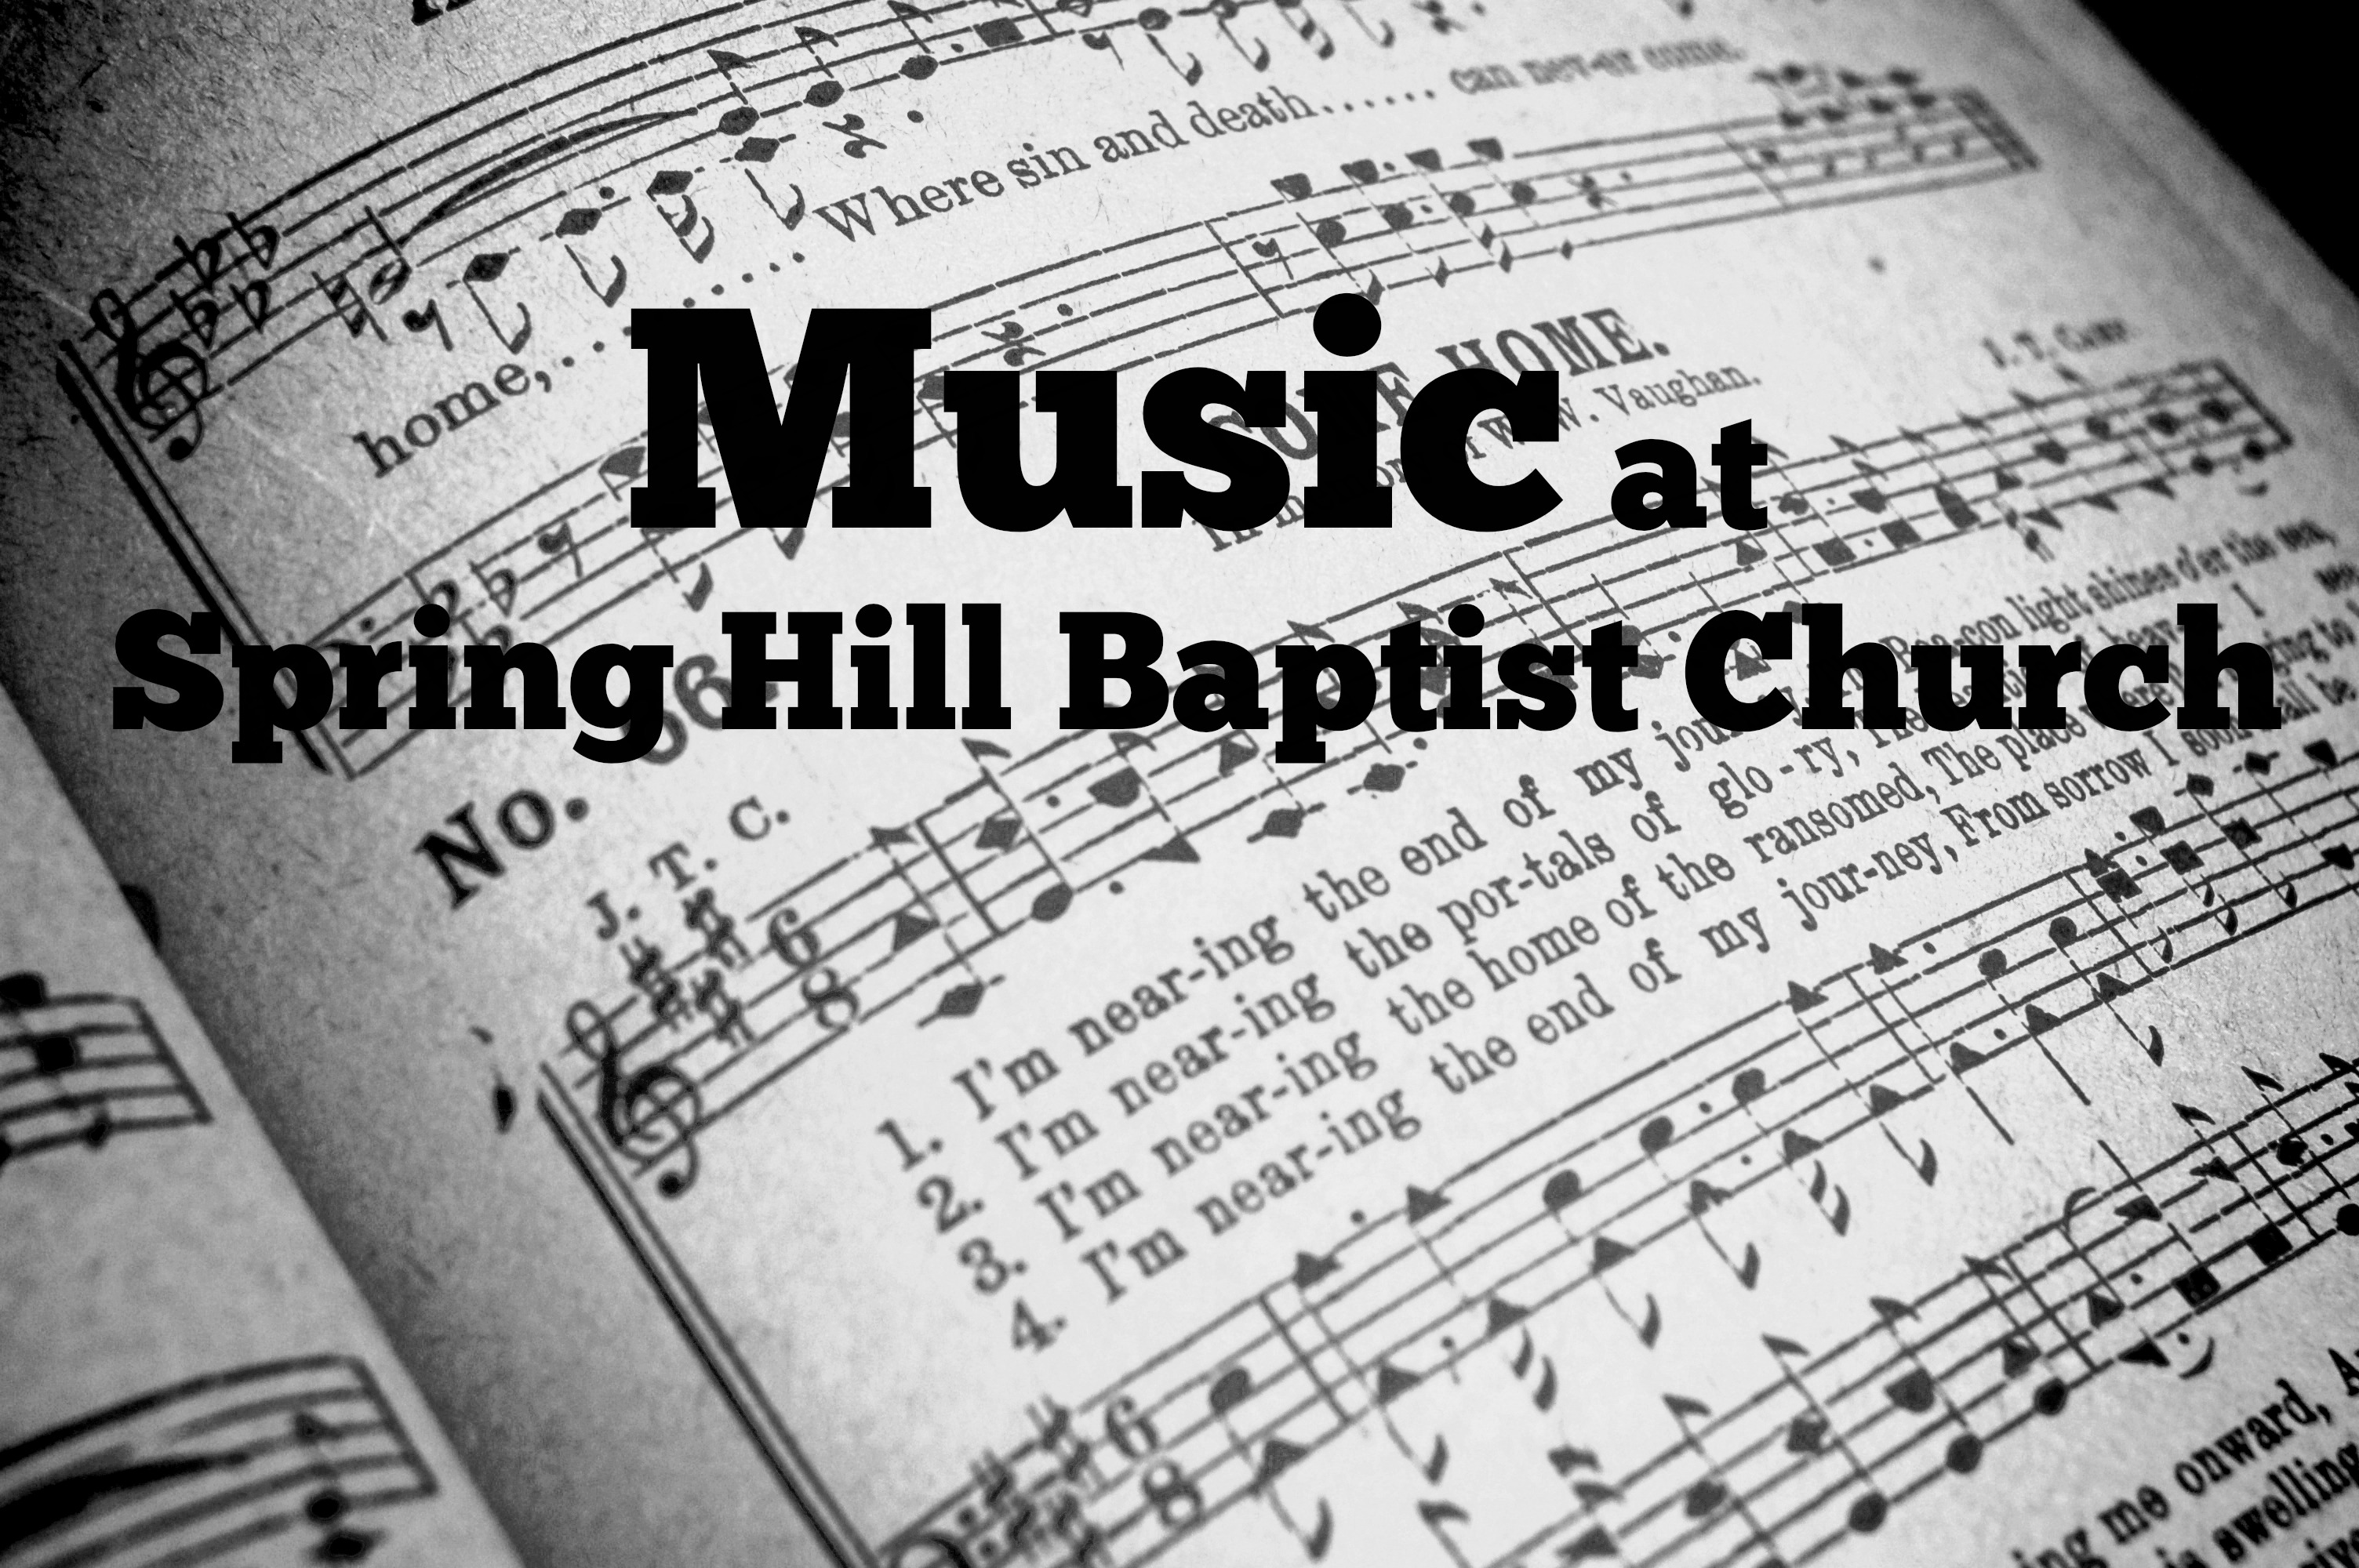 If music is something you love, Spring Hill Baptist Church is the place for you! Our music program is one of the best!